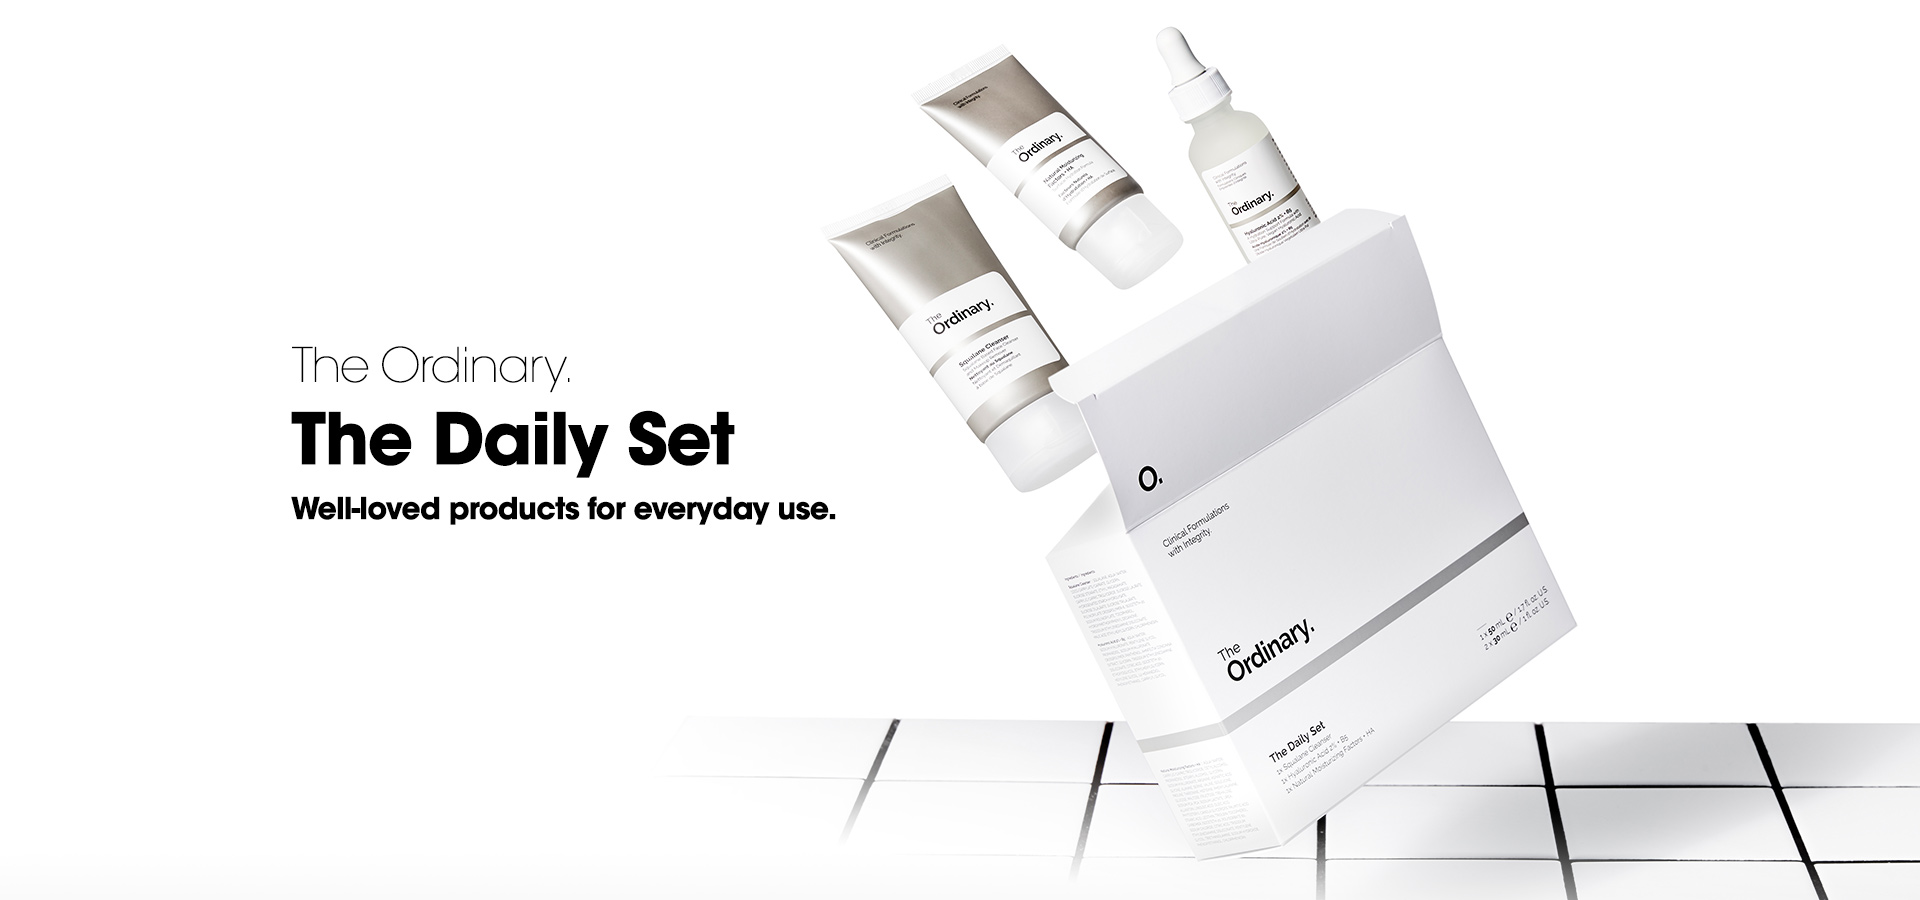 TheOrdinary- Deciem Discount Codes & Promo Codes 2020 - Great Deals on skincare treatment products and beauty therapies..